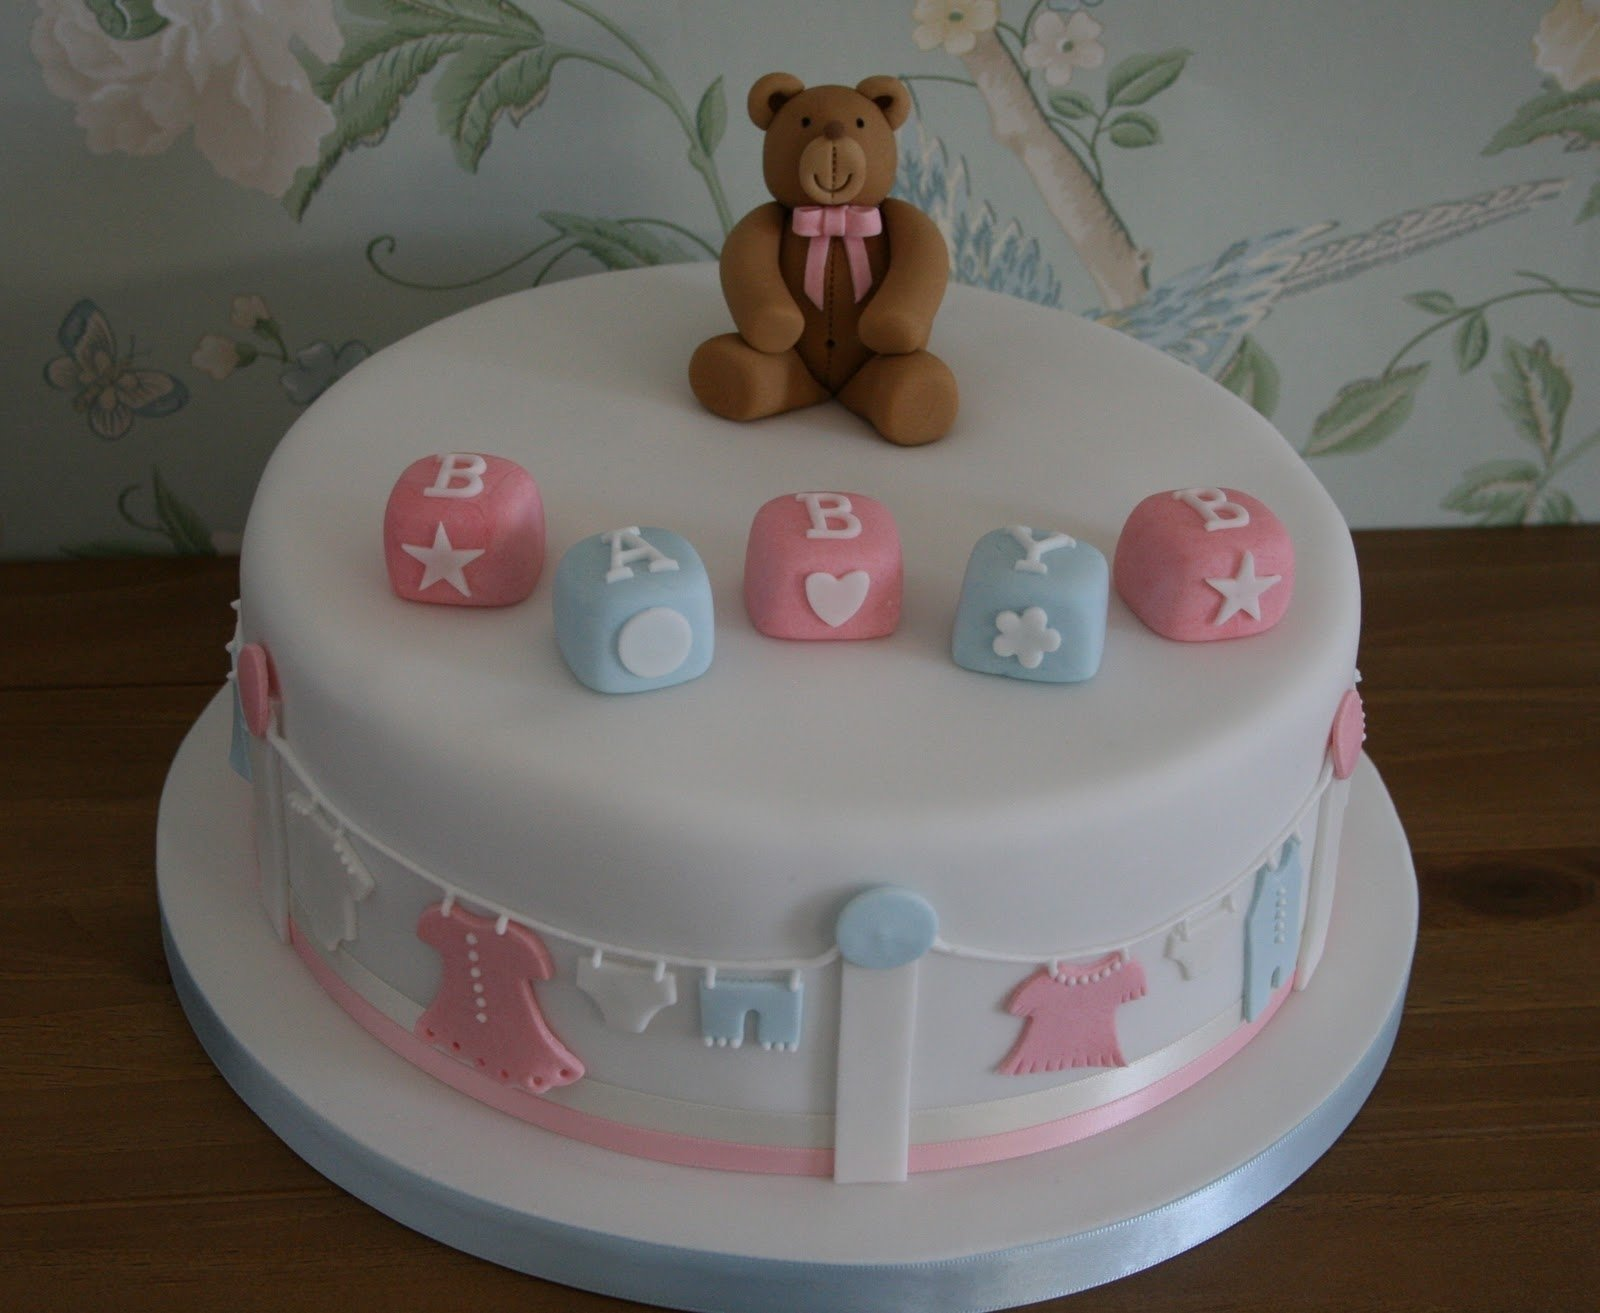 cute baby shower cake ideas | omega-center - ideas for baby